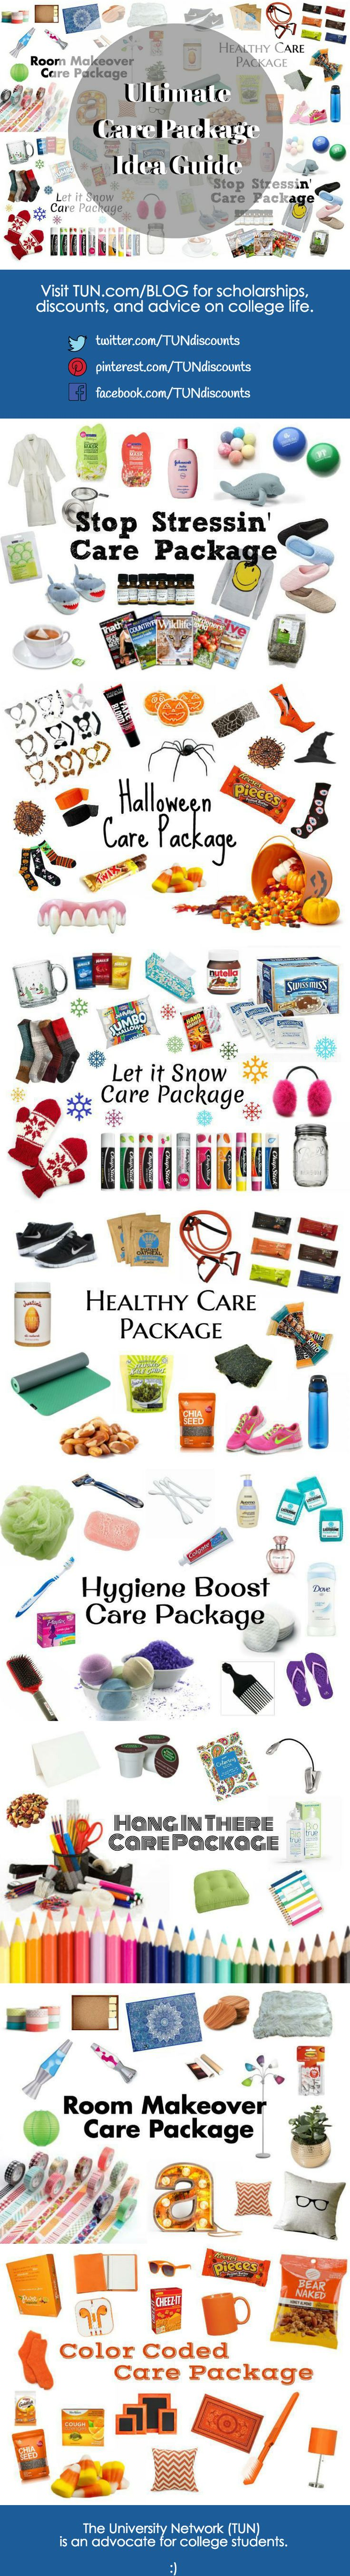 Whether you're giving a care package or receiving one, these simple boxes are a wonderful surprise for any college student. Show someone how much they mean to you with these 8 great care package ideas!